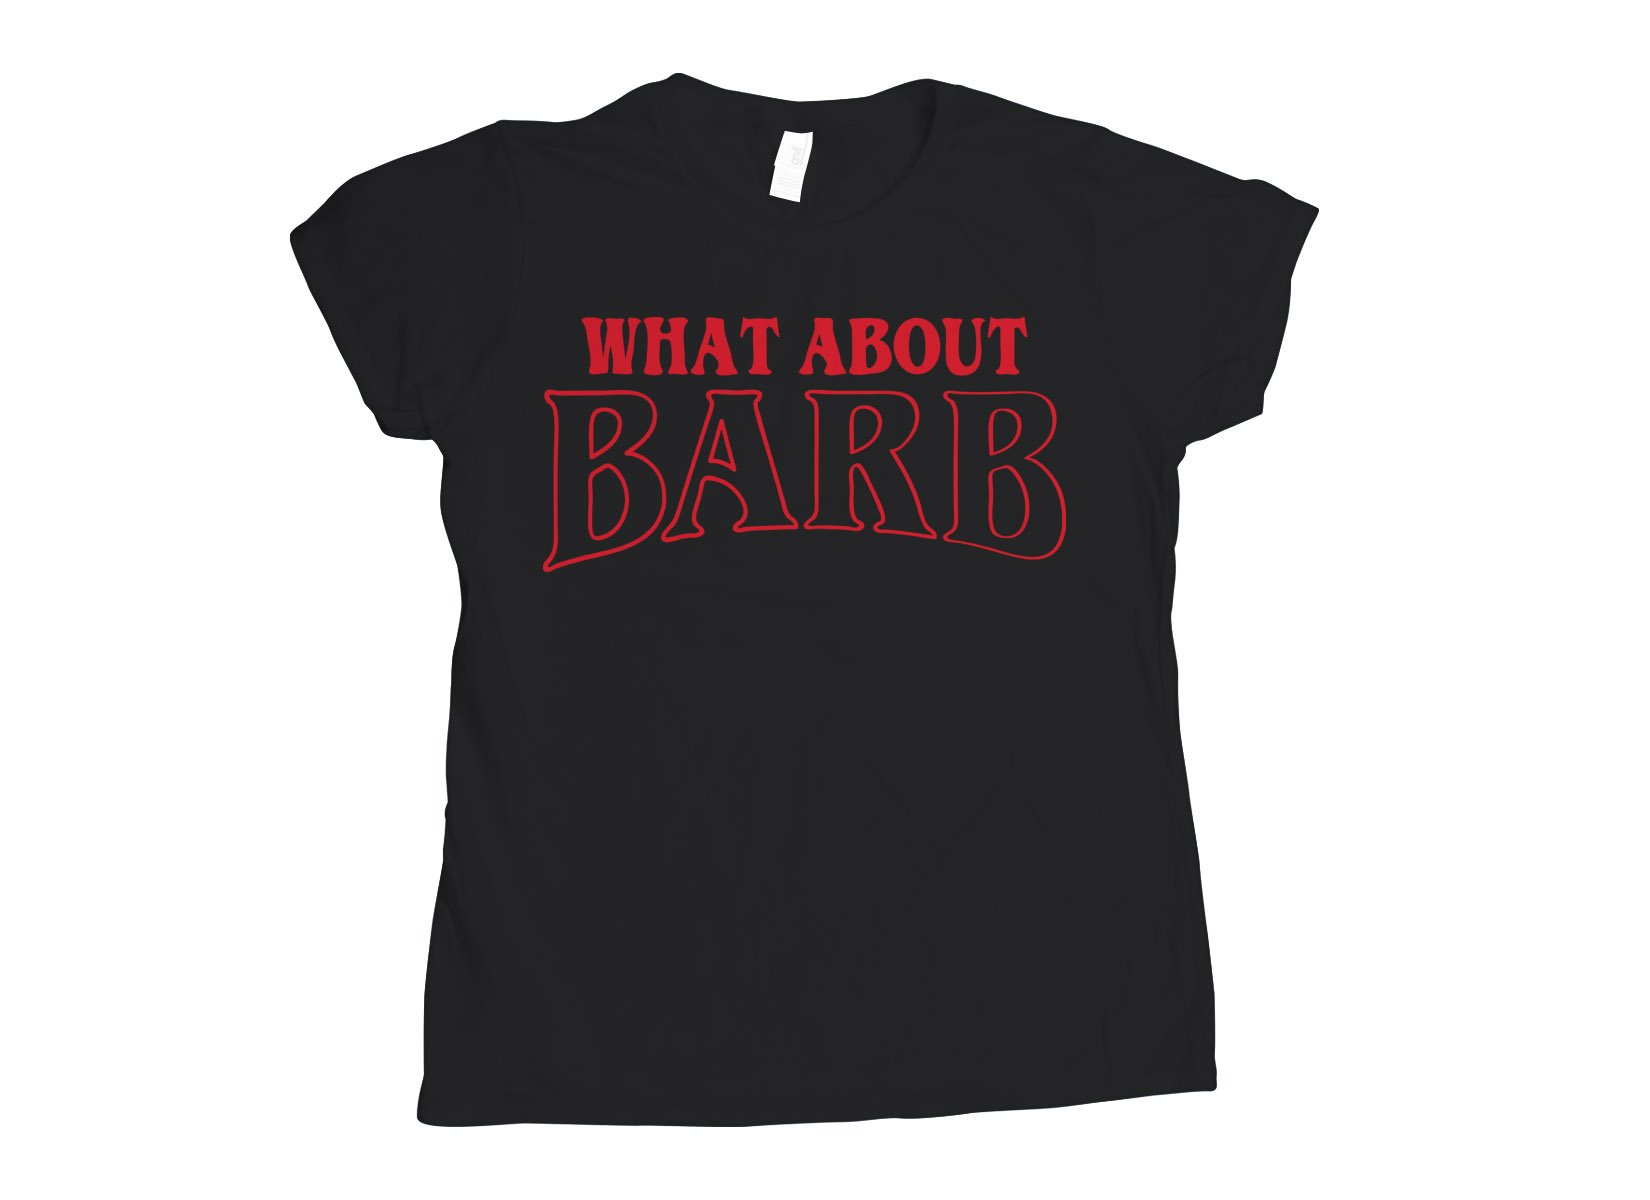 What About Barb? on Womens T-Shirt